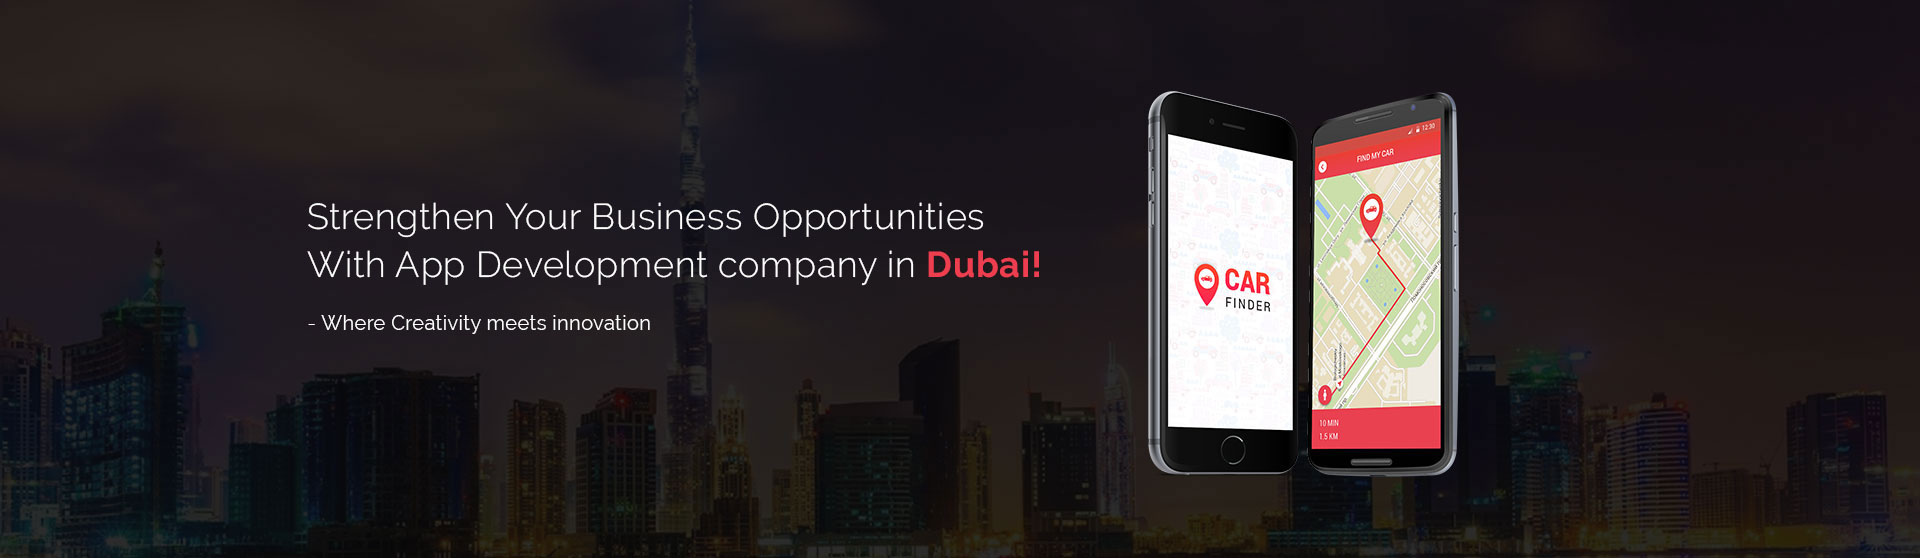 app development company in Dubai